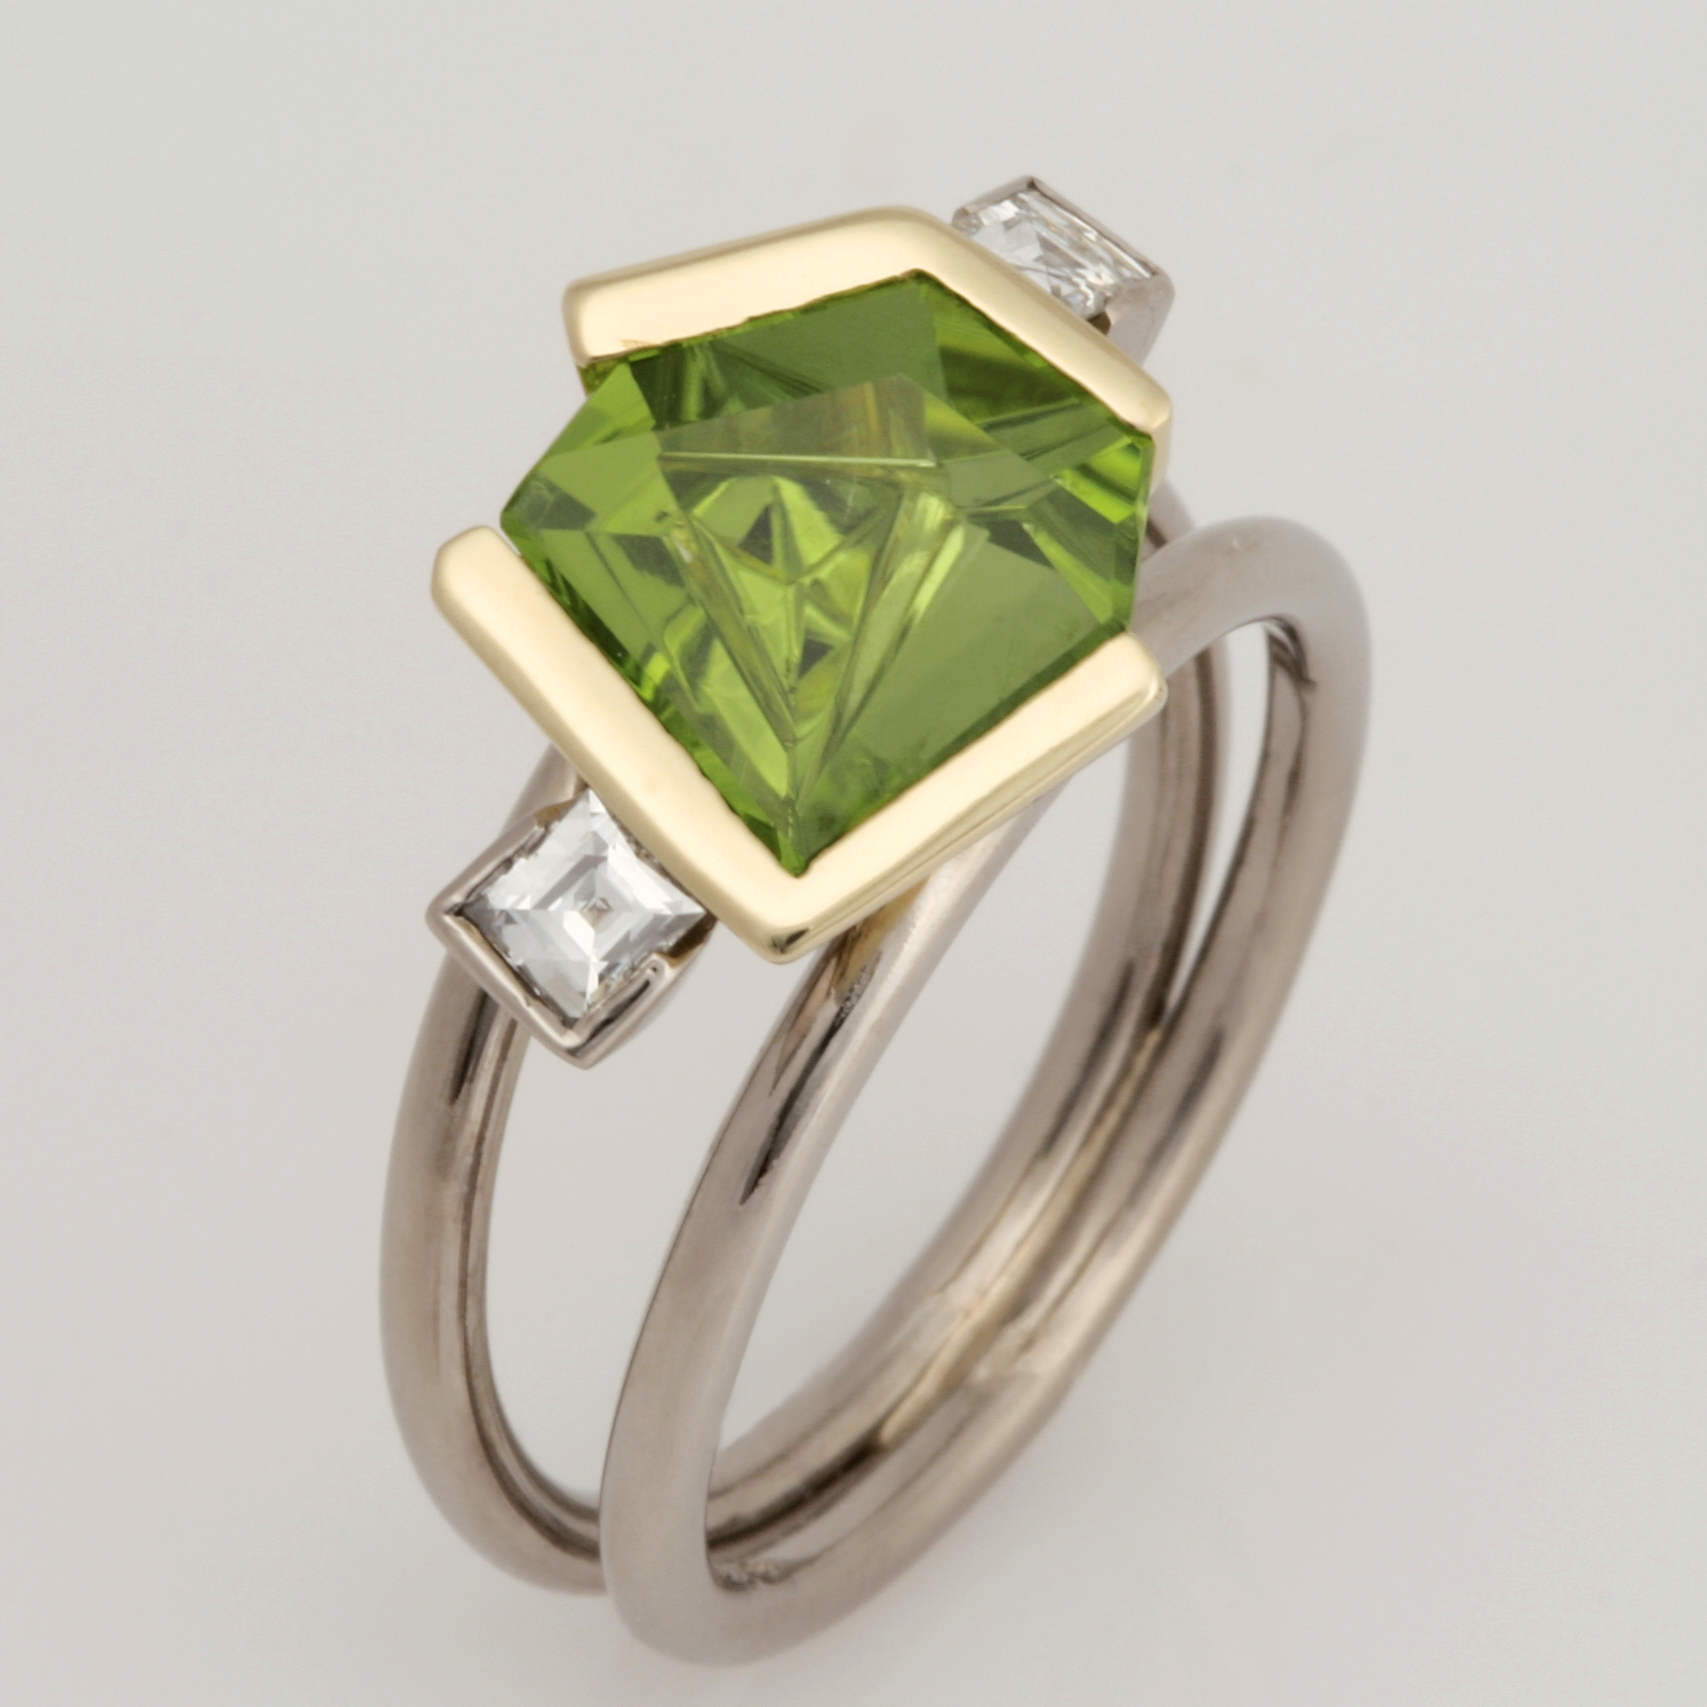 Handmade ladies 18ct white gold and 18ct green gold ring featuring a fancy cut peridot and tycoon cut diamonds.